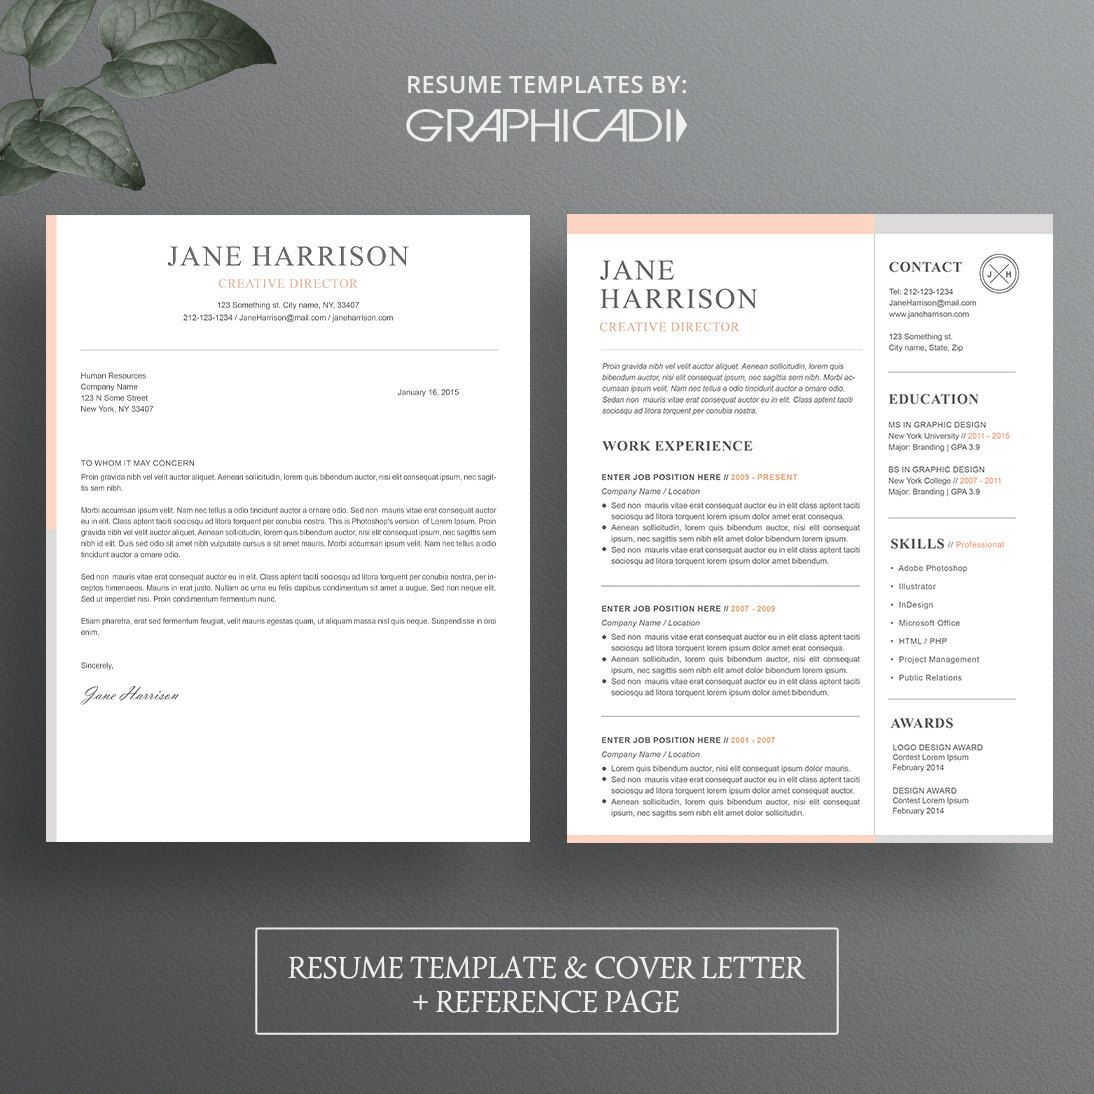 Resume Template With Cover Letter And Reference Page   Group